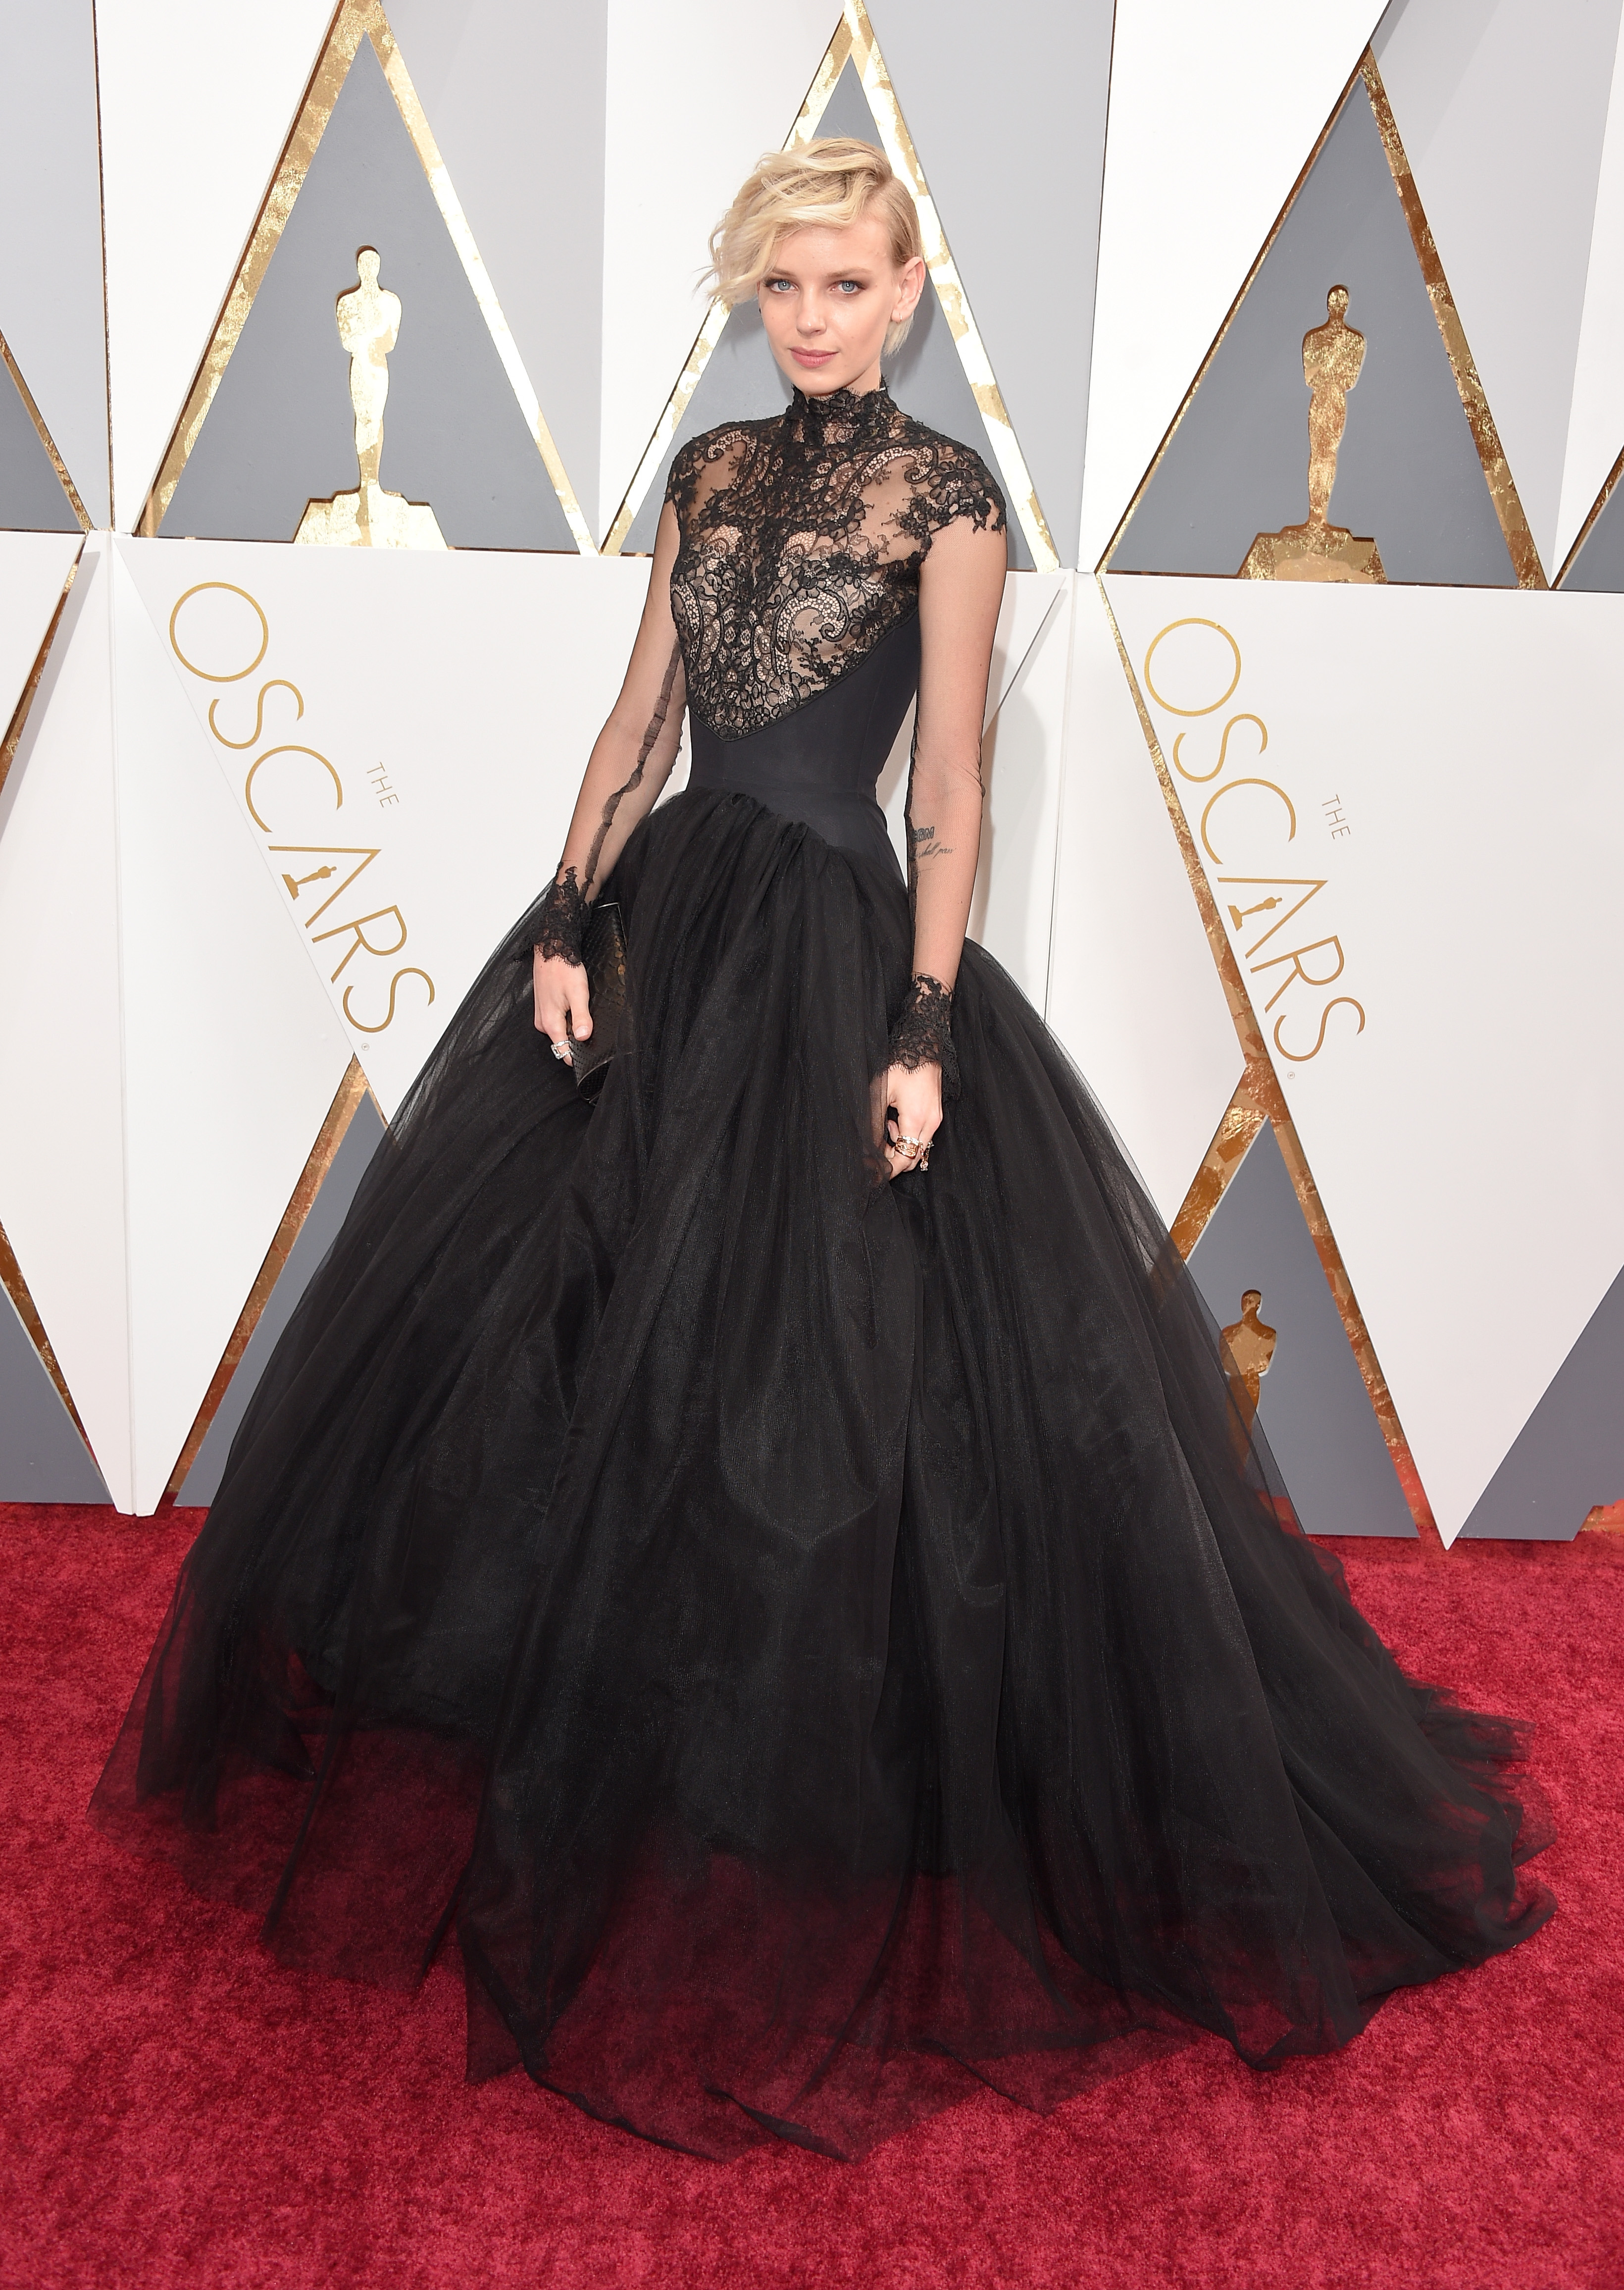 Dorith Mous attends the 88th Annual Academy Awards on Feb. 28, 2016 in Hollywood, Calif.